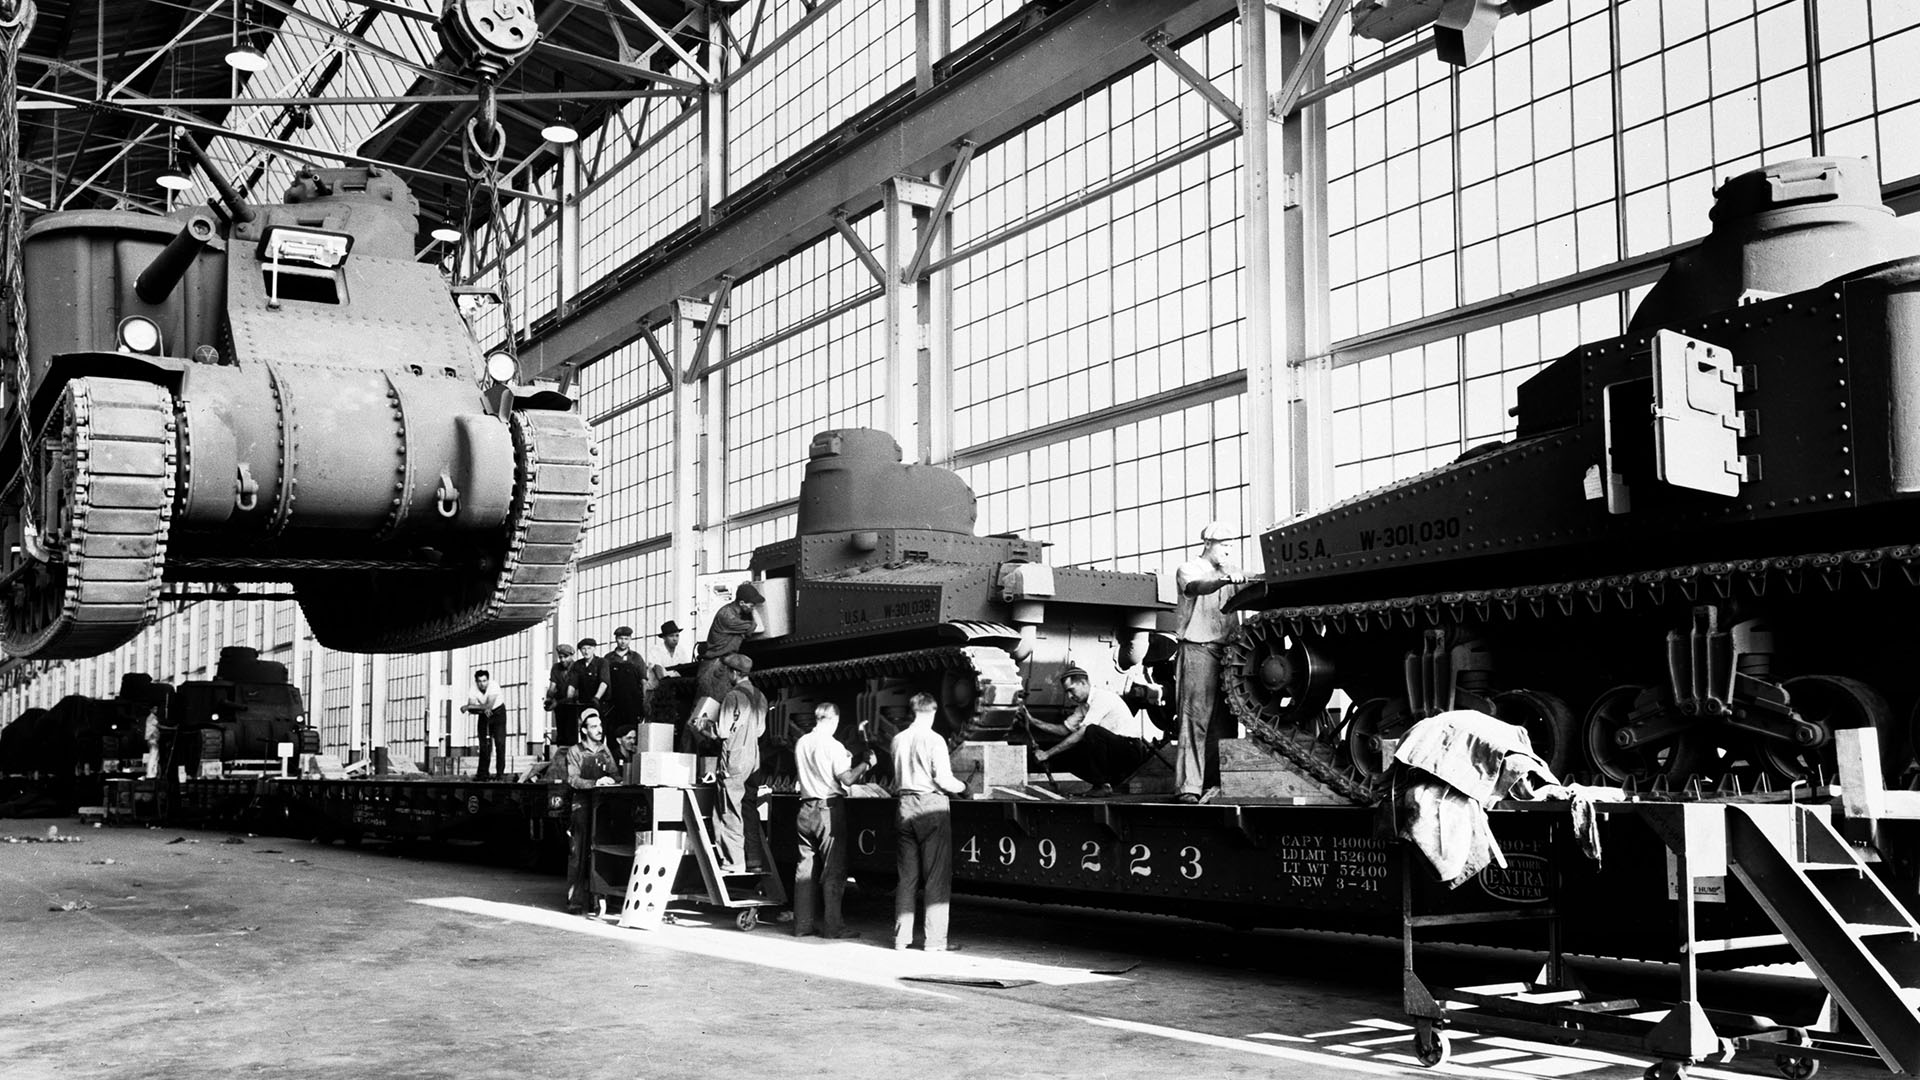 Workers at a Chrysler plant assemble tanks.